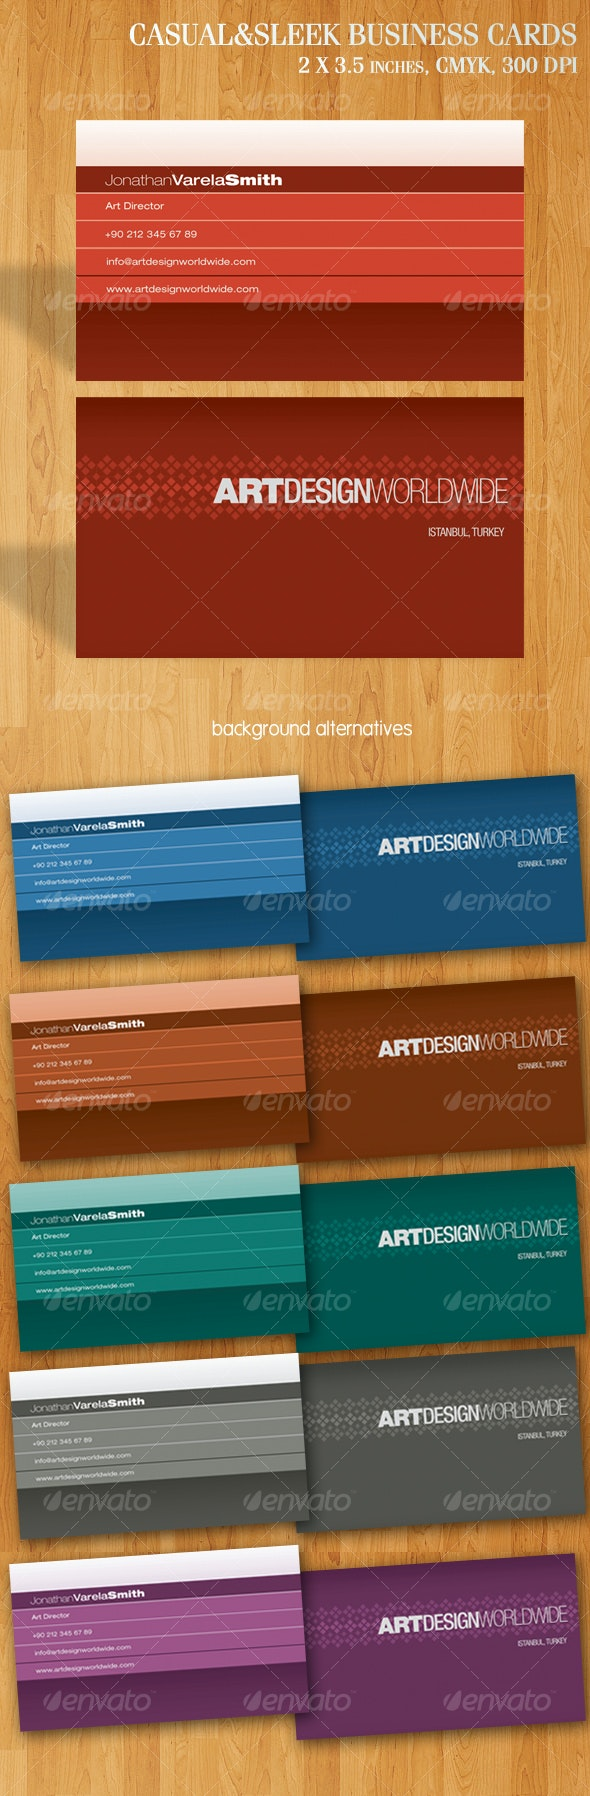 Casual & Sleek Business Cards - Corporate Business Cards